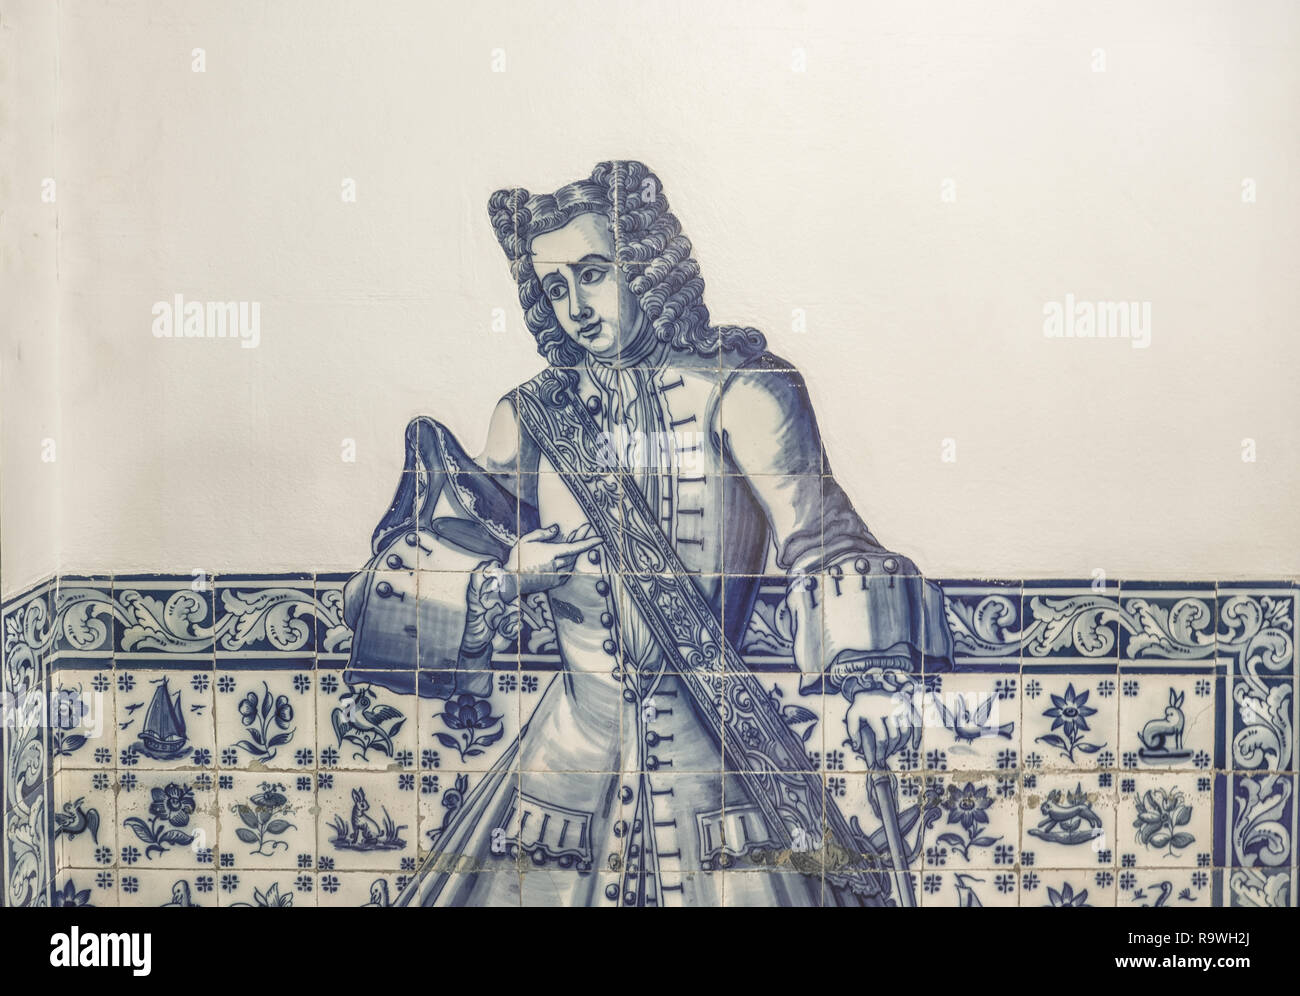 Lisbon - Portugal, gentleman depicted on the facade of an old house with typical hand-painted blue tiles (azulejos) - Stock Image